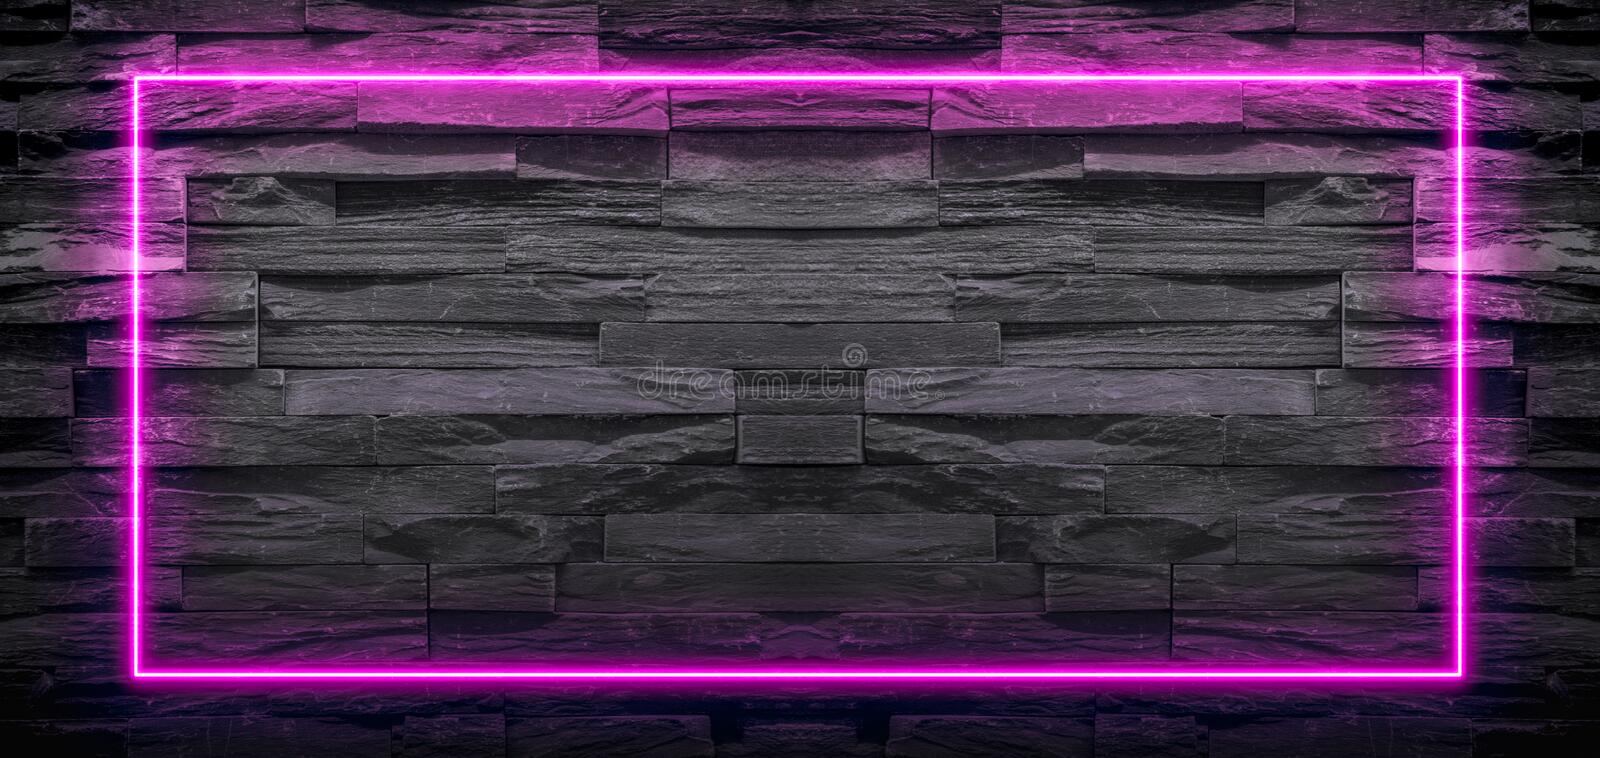 Pink neon light frame on stone background. Copy space for text or product display royalty free stock images